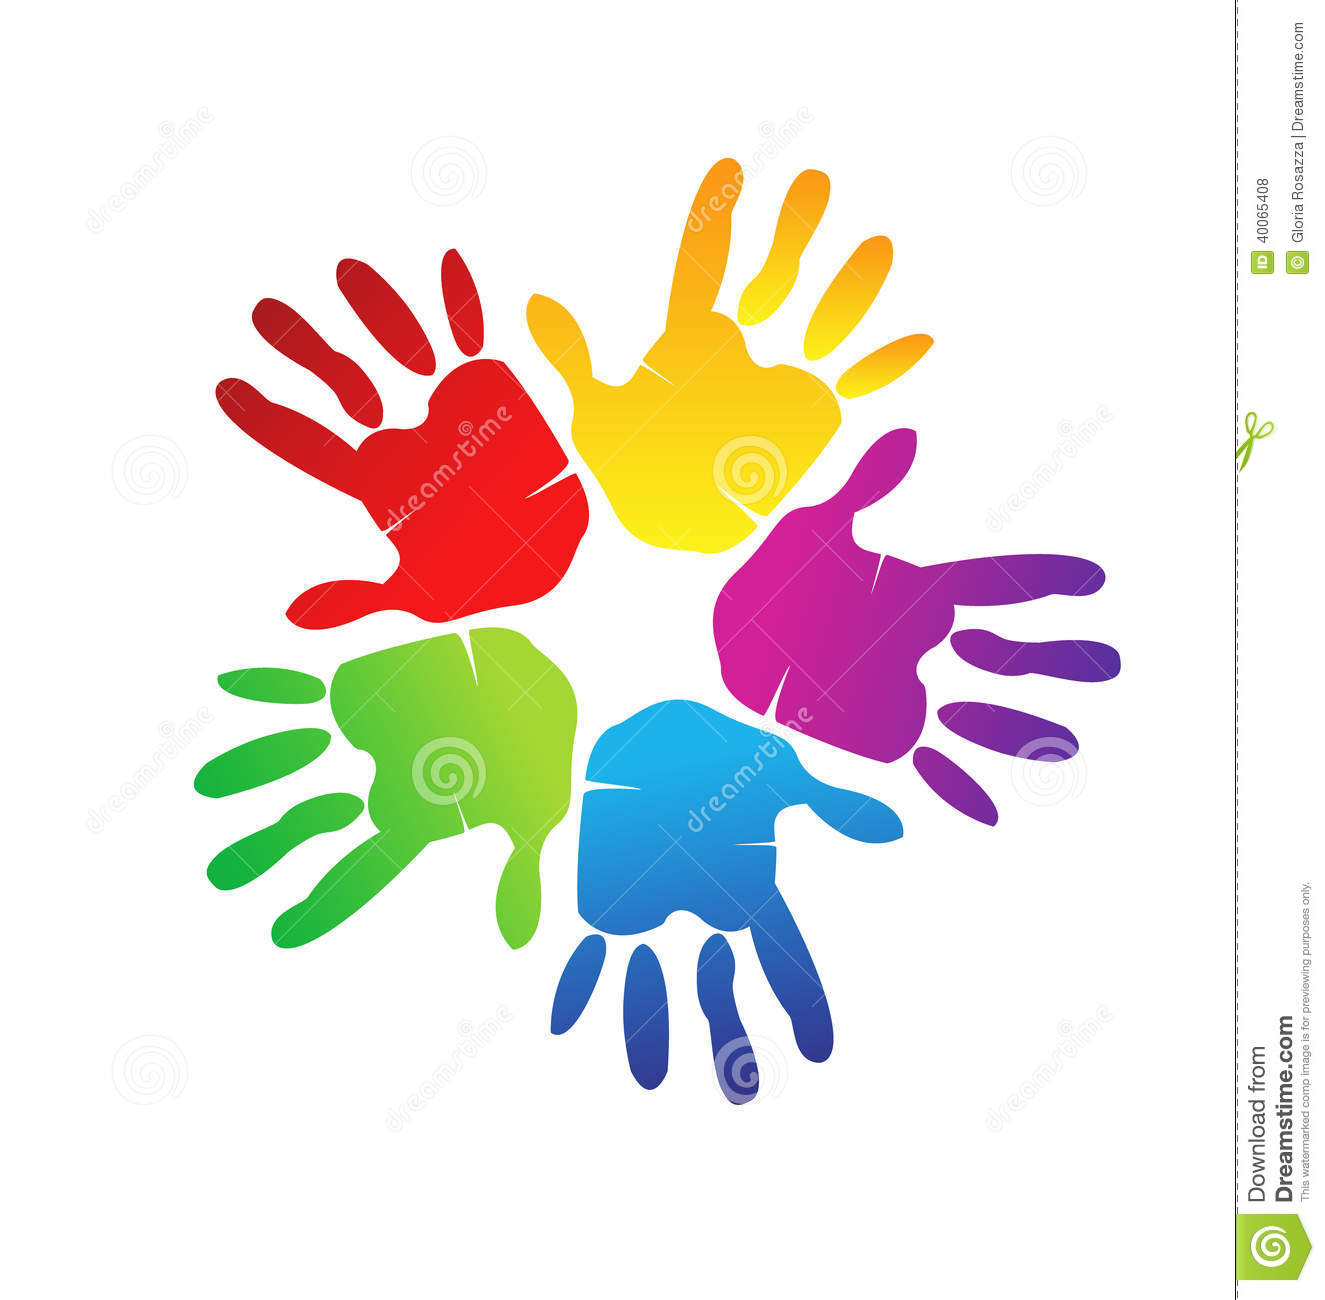 Hands colorful creative graphic logo design.